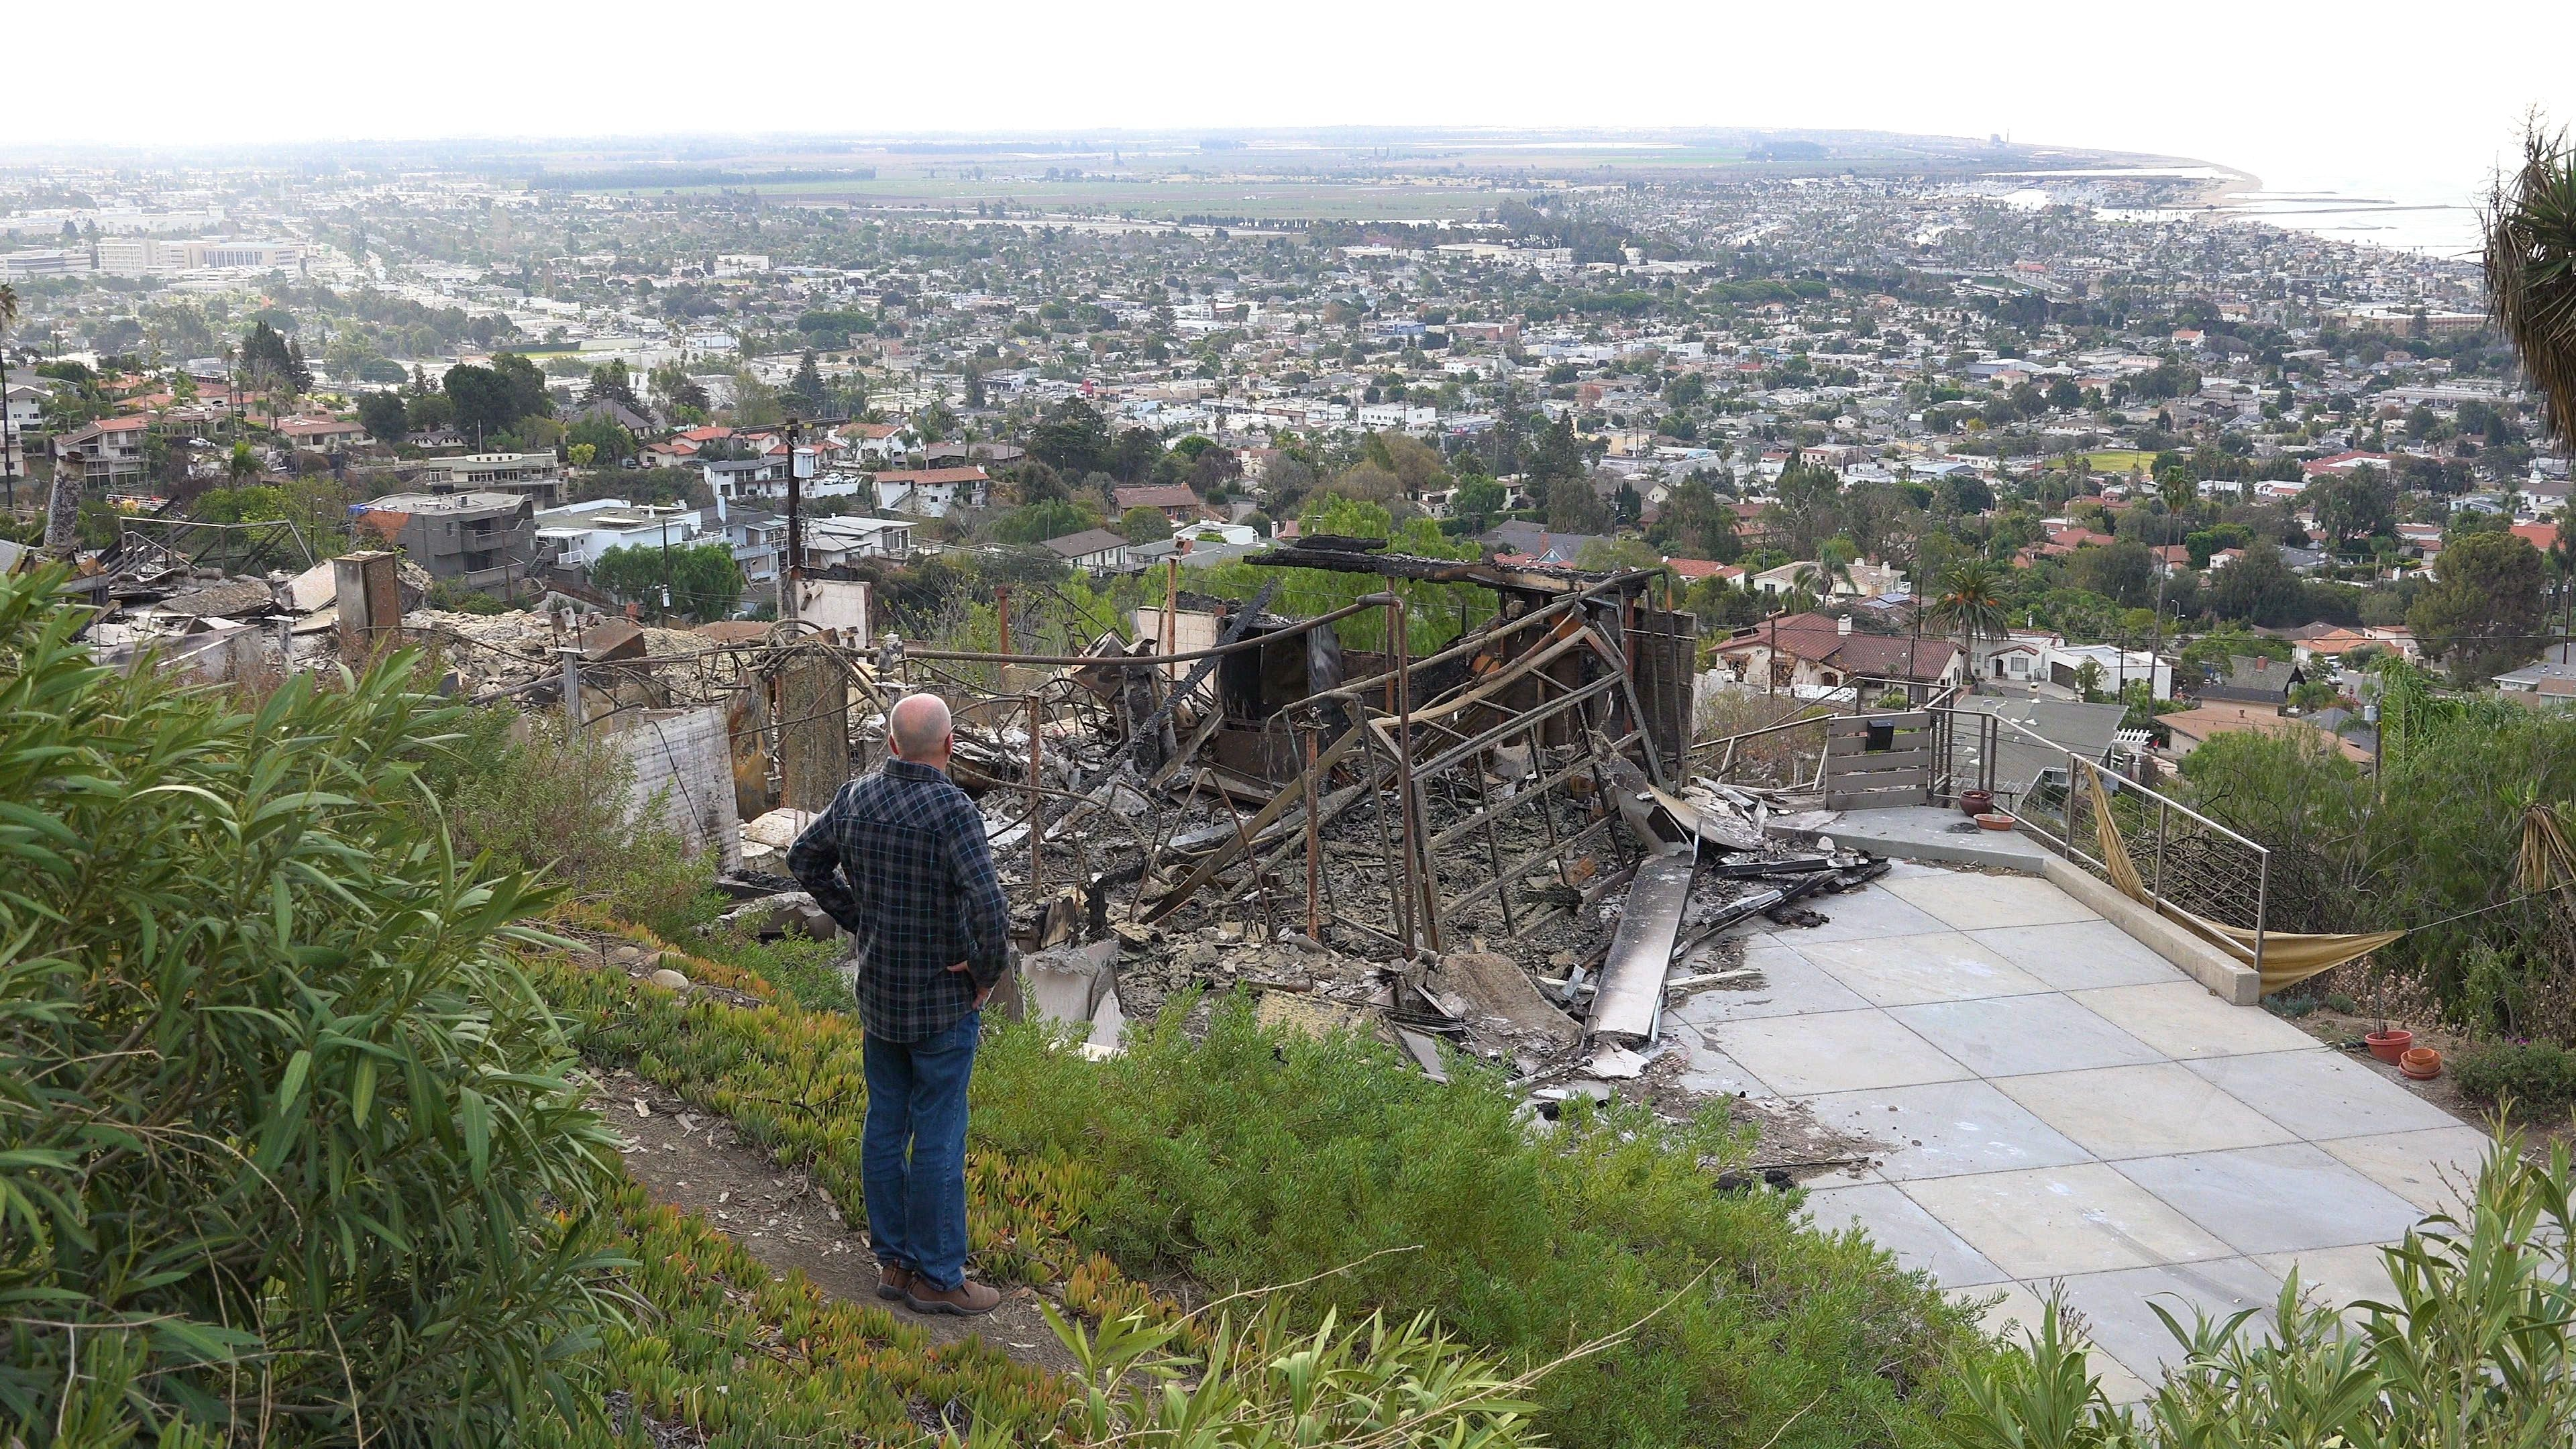 A Man Stands In Front Of A Burned Home After The Thomas Fire In Ventura Stock Footage Burned Home Front Man Stock Video Stock Footage Ventura